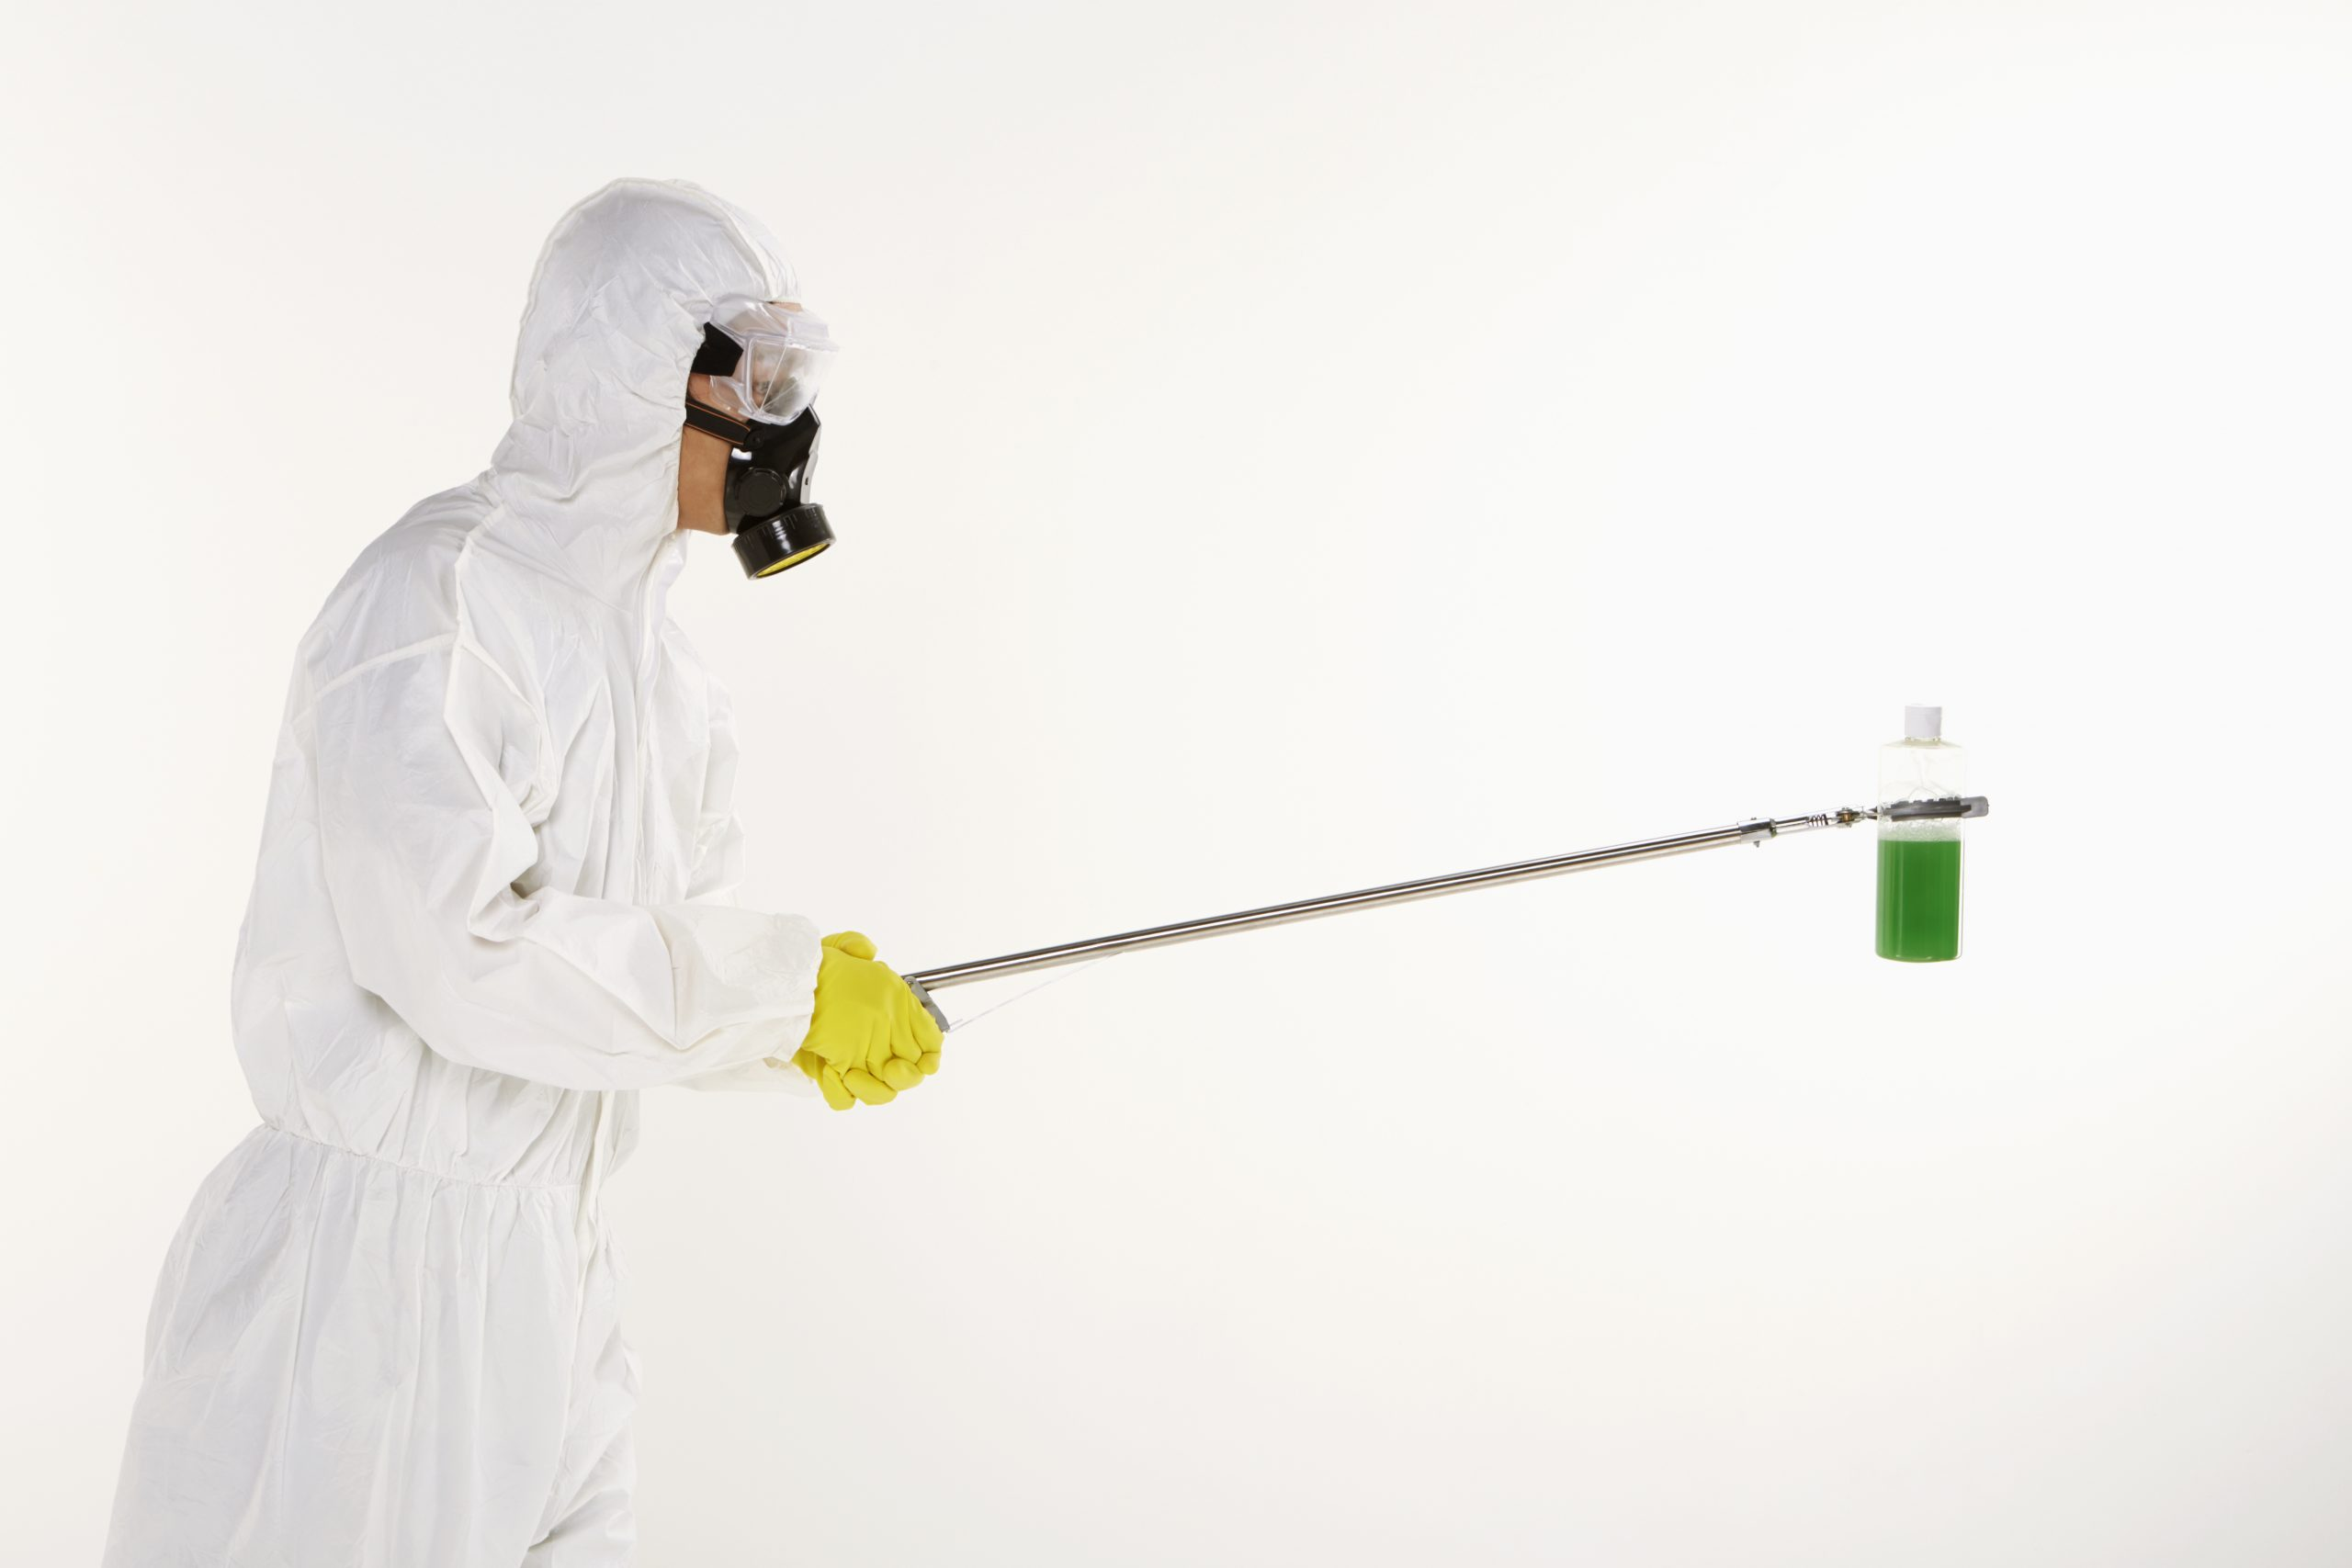 Man in protective suit holding up a bottle of chemical hazardous waste